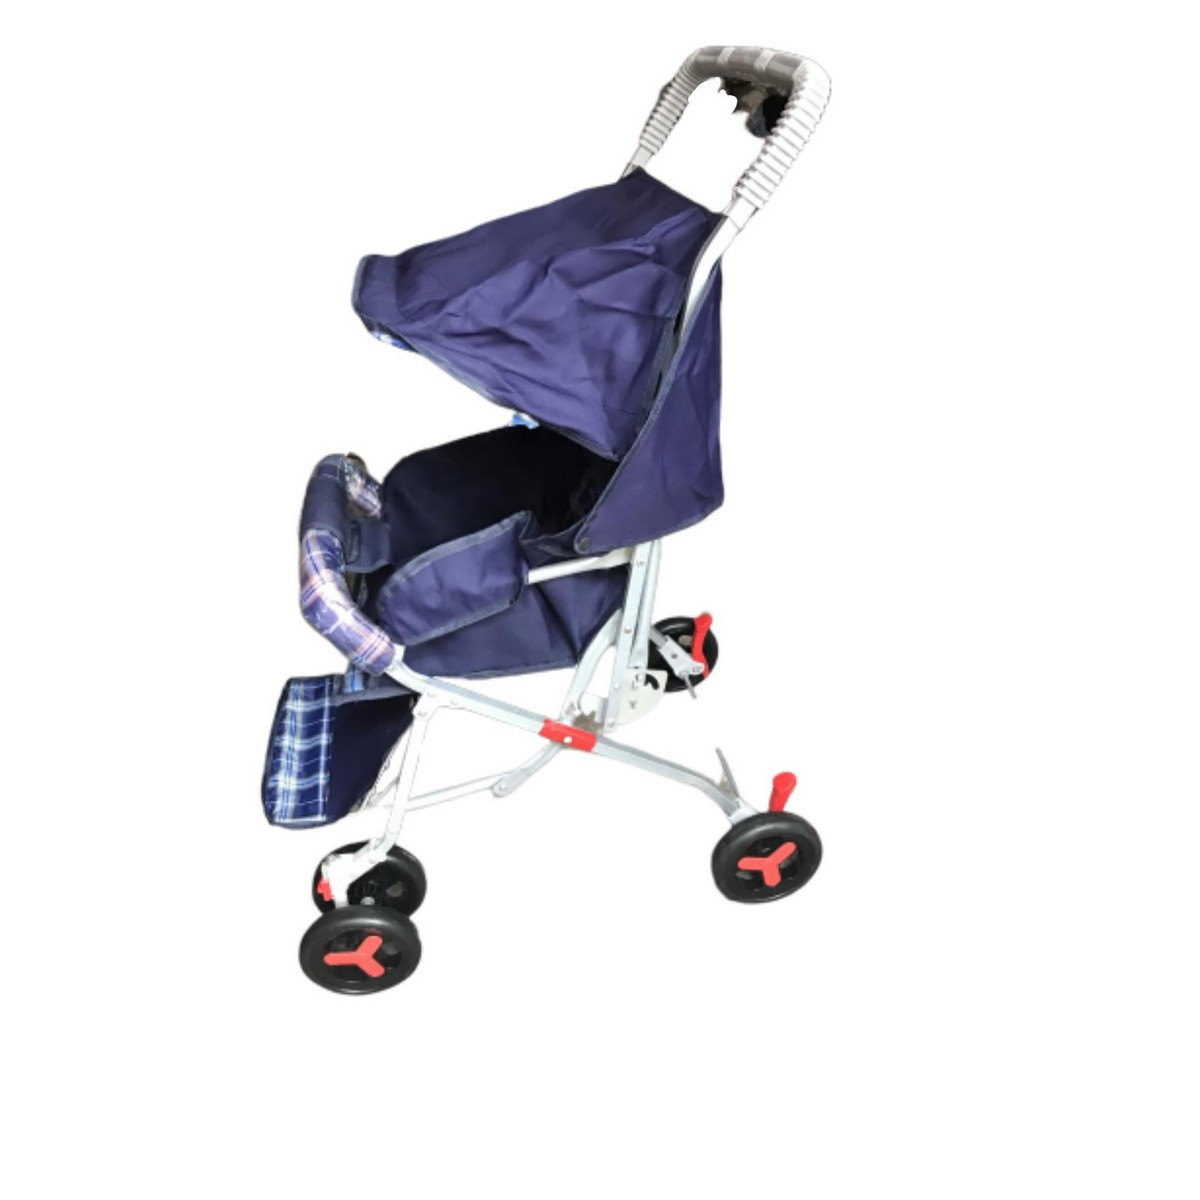 Alloy Foldable Baby Stroller Pram For Newborn  Blue color with  6 Big Tyres